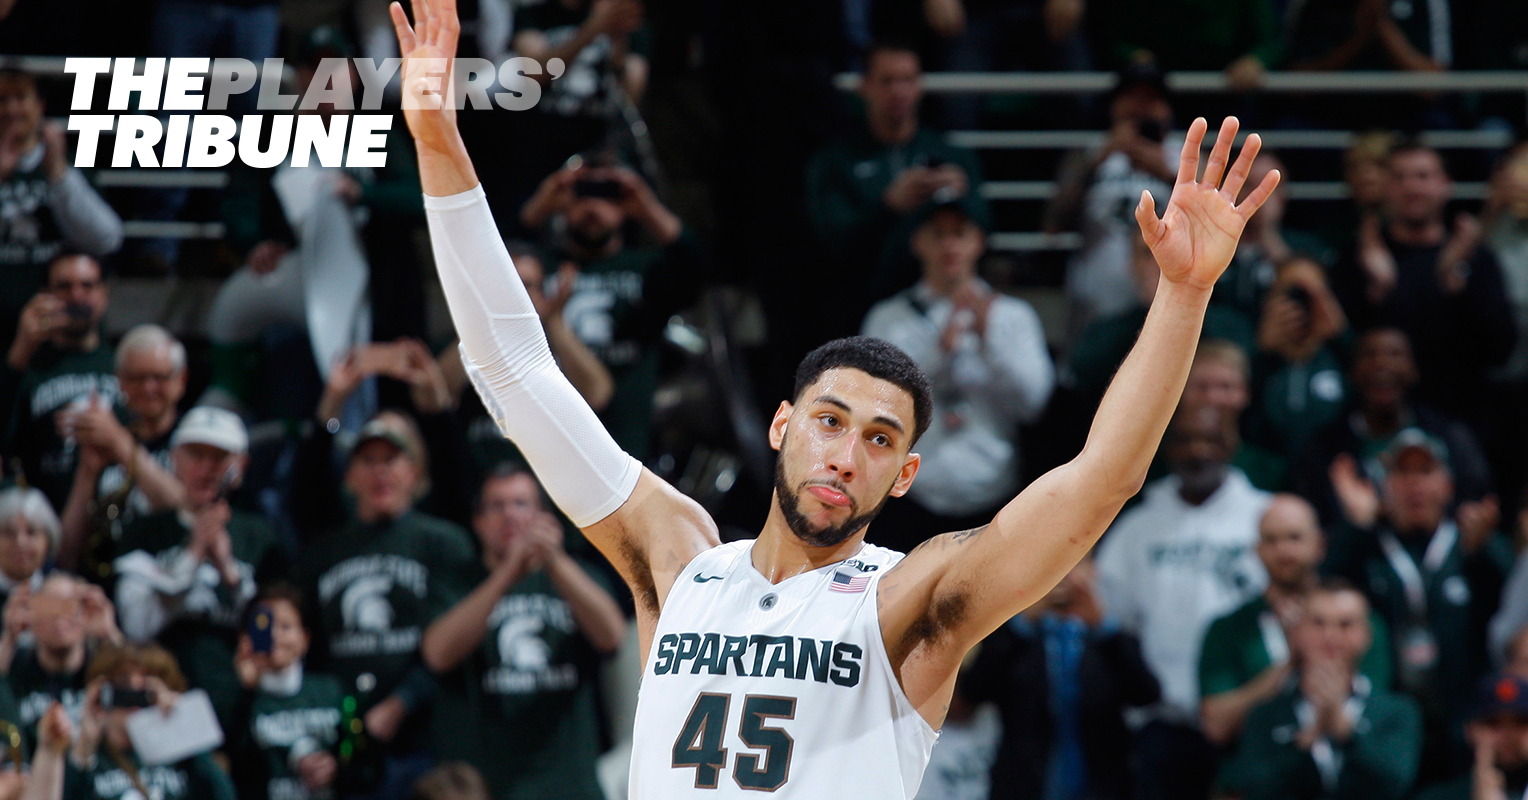 finest selection 93cff c86df Spartan for Life | By Denzel Valentine